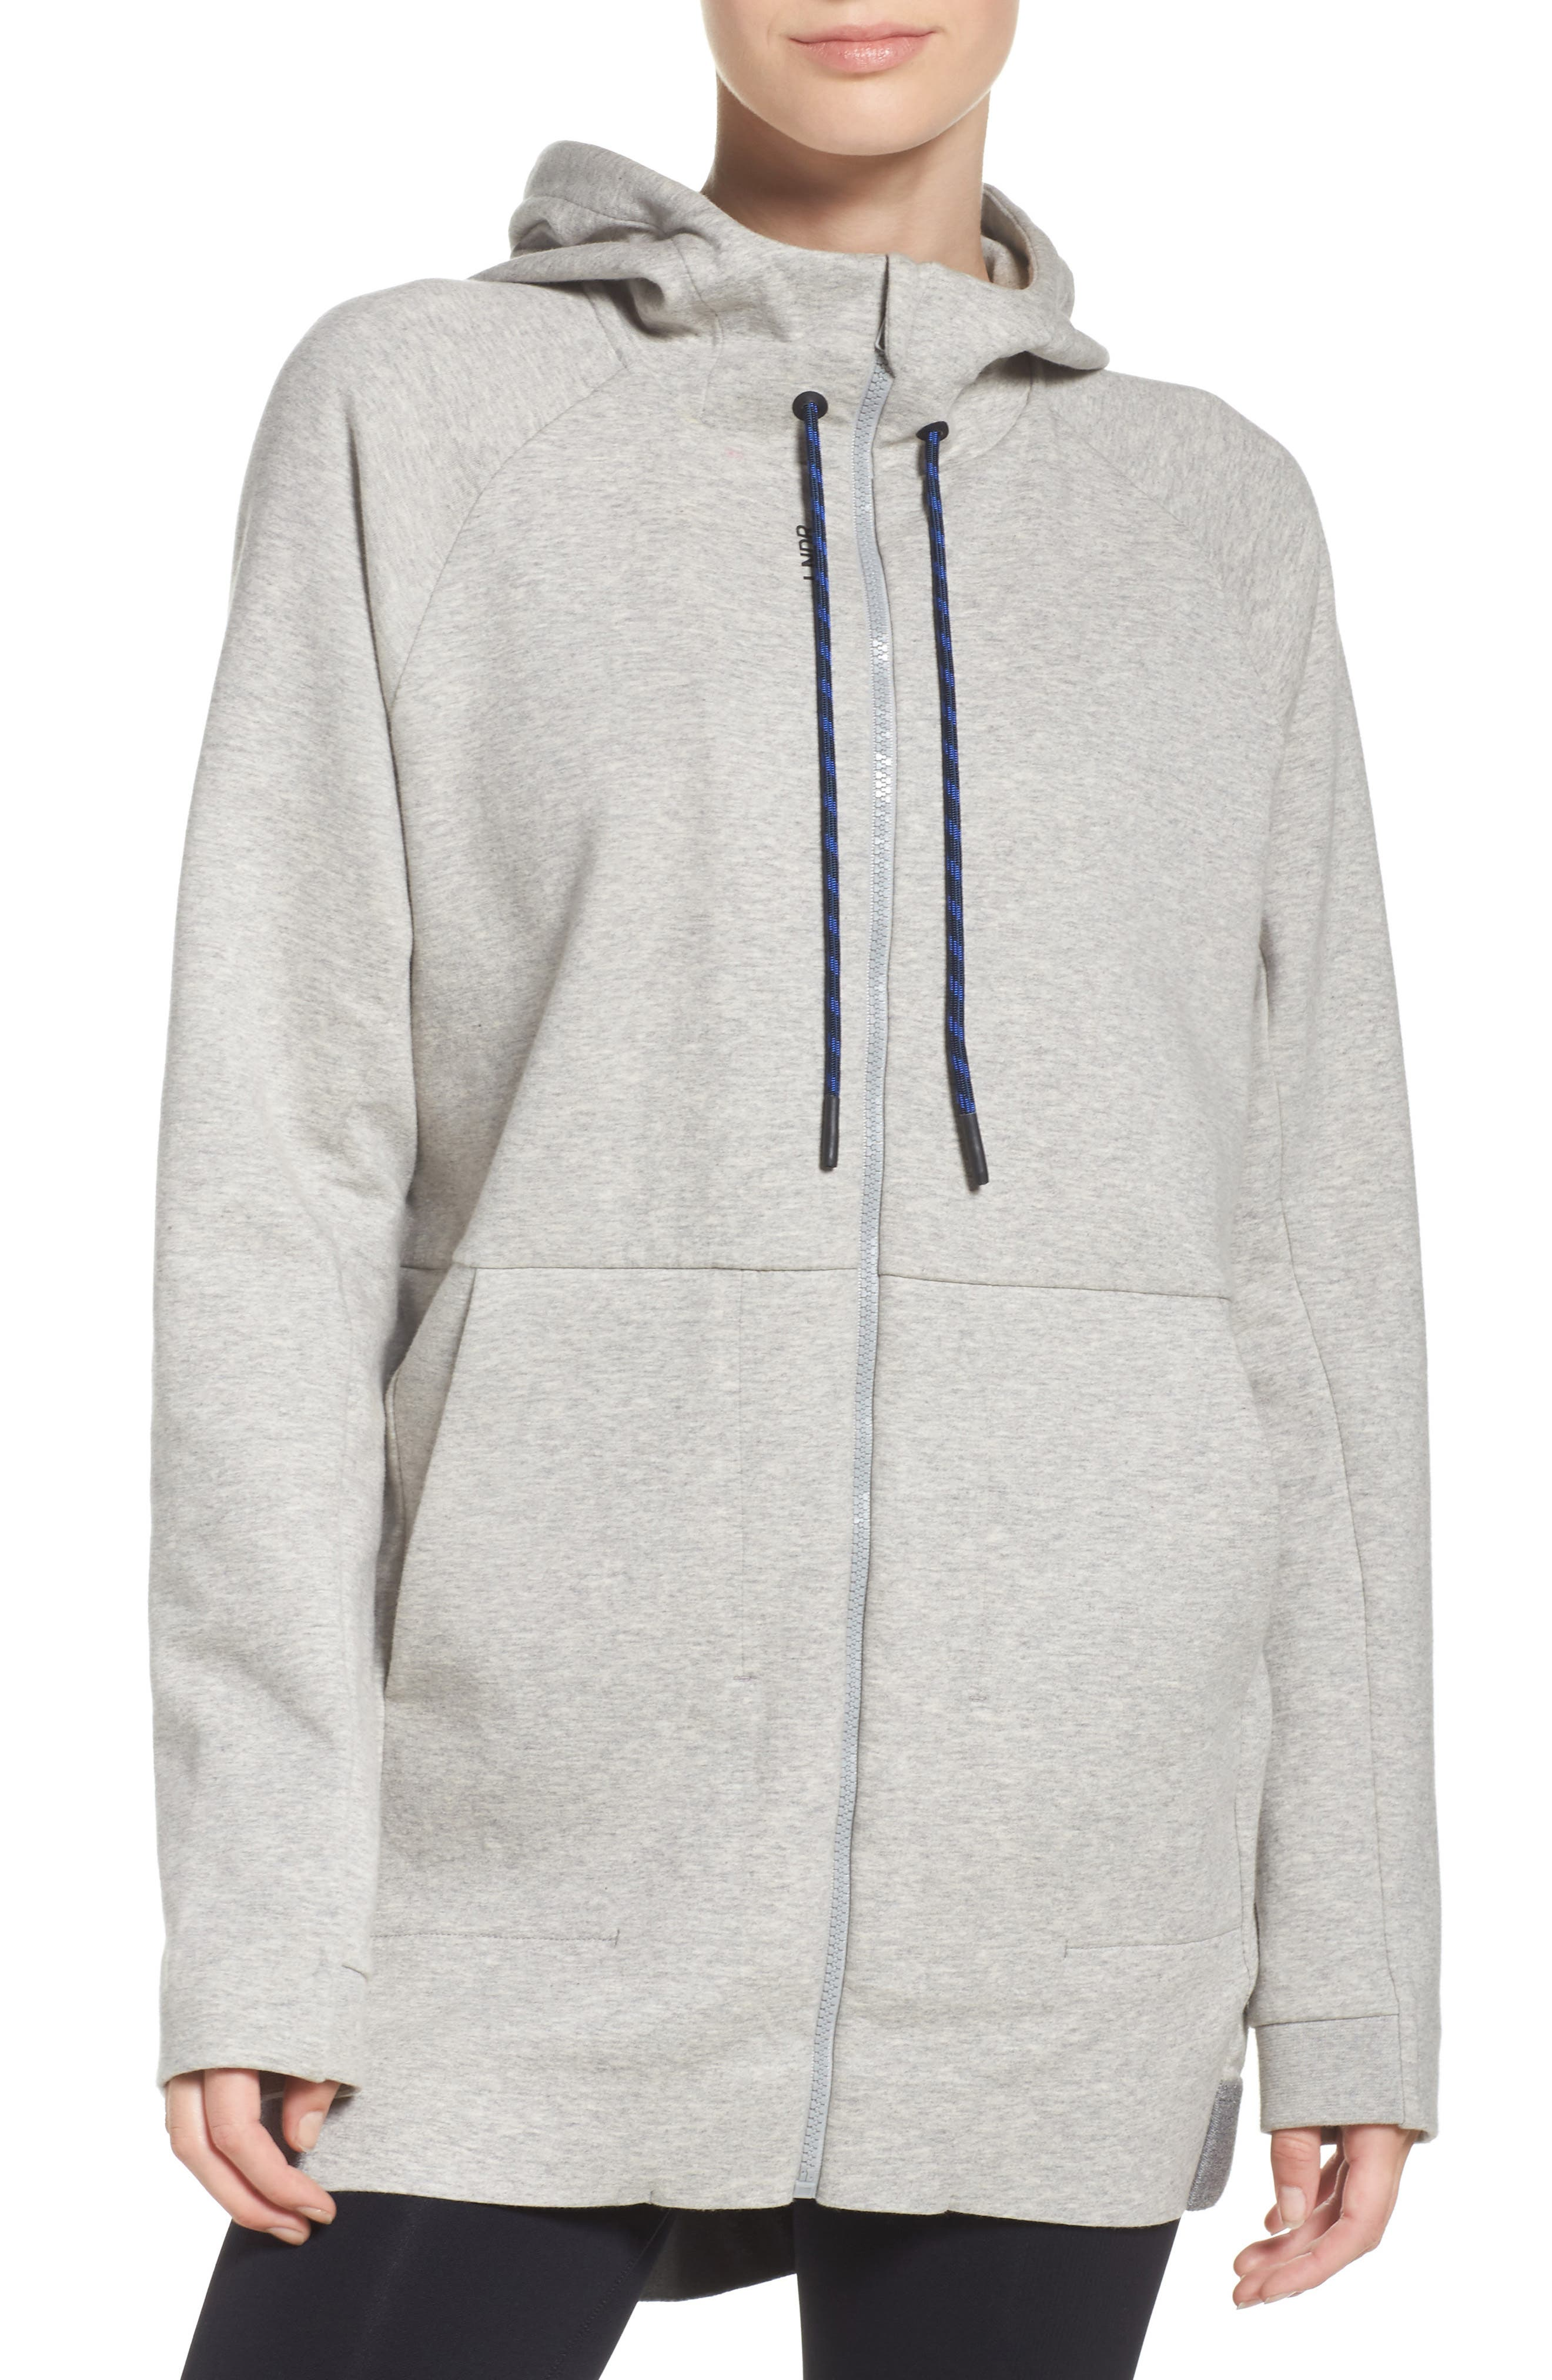 Alternate Image 1 Selected - LNDR Switch Oversize Hoodie